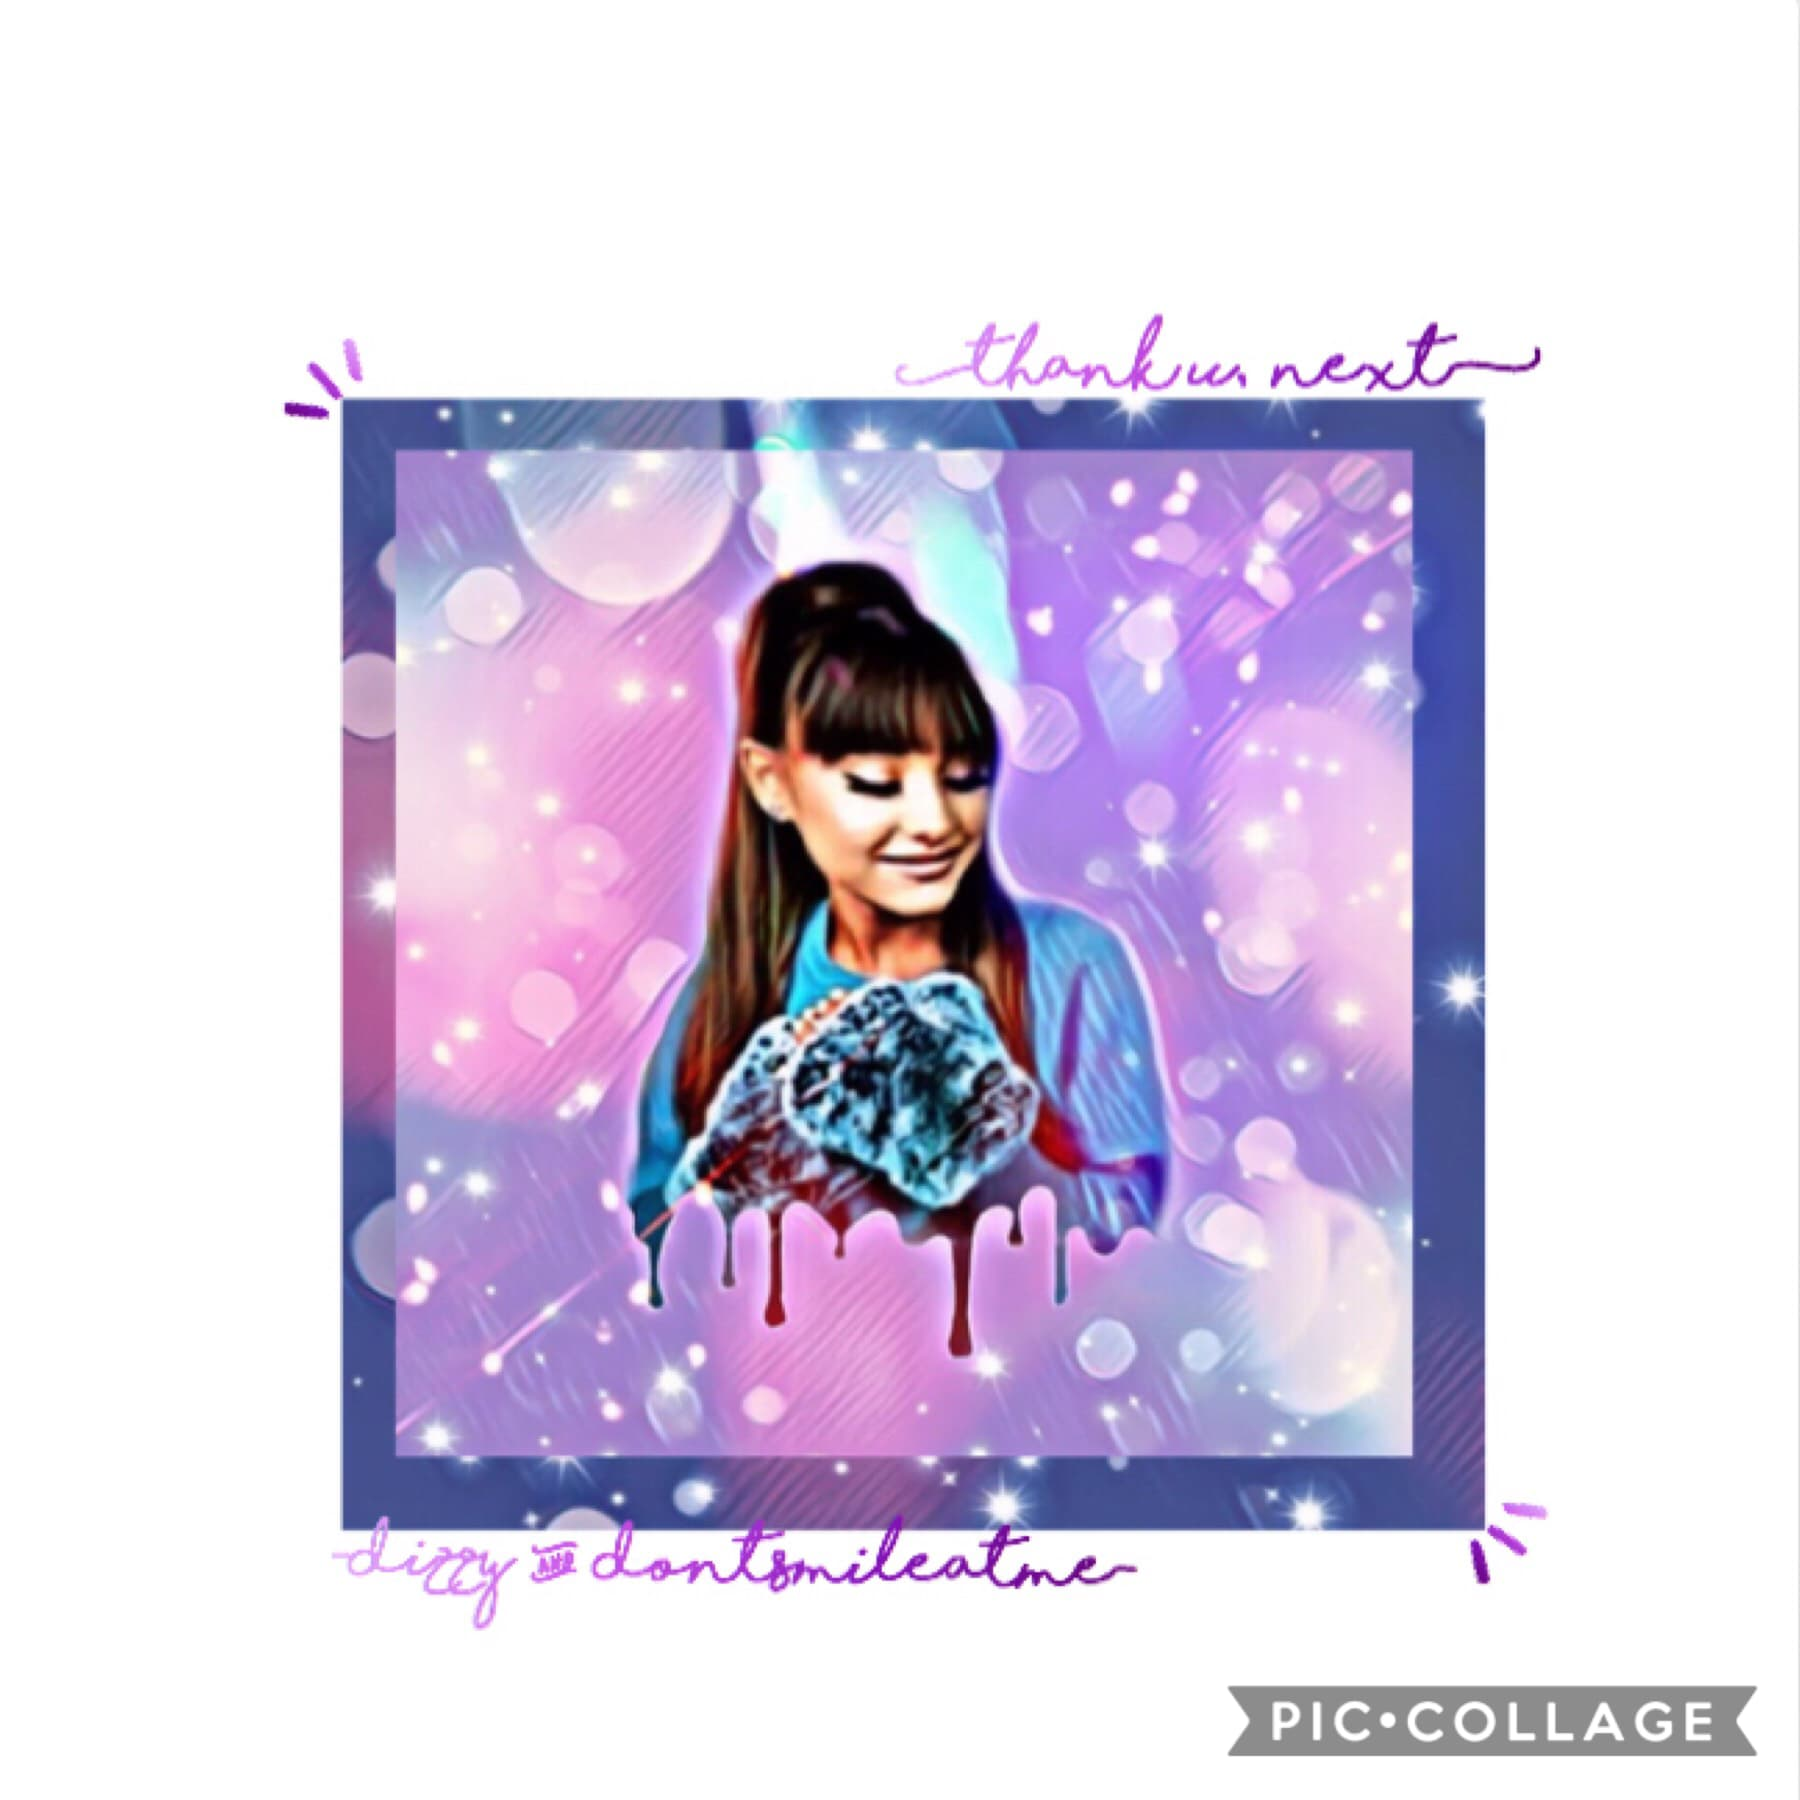 ☔️tappy☂️ collab with ☂️dontsmileatme-☔️ she did the amazing BG😍and I did the not so great text😂  daily shoutout: 💫MAGIXAL1FE💫 comment 😊 for a shoutout   QOTD: Wuts ur fav TV show? AOTD: Riverdale💕